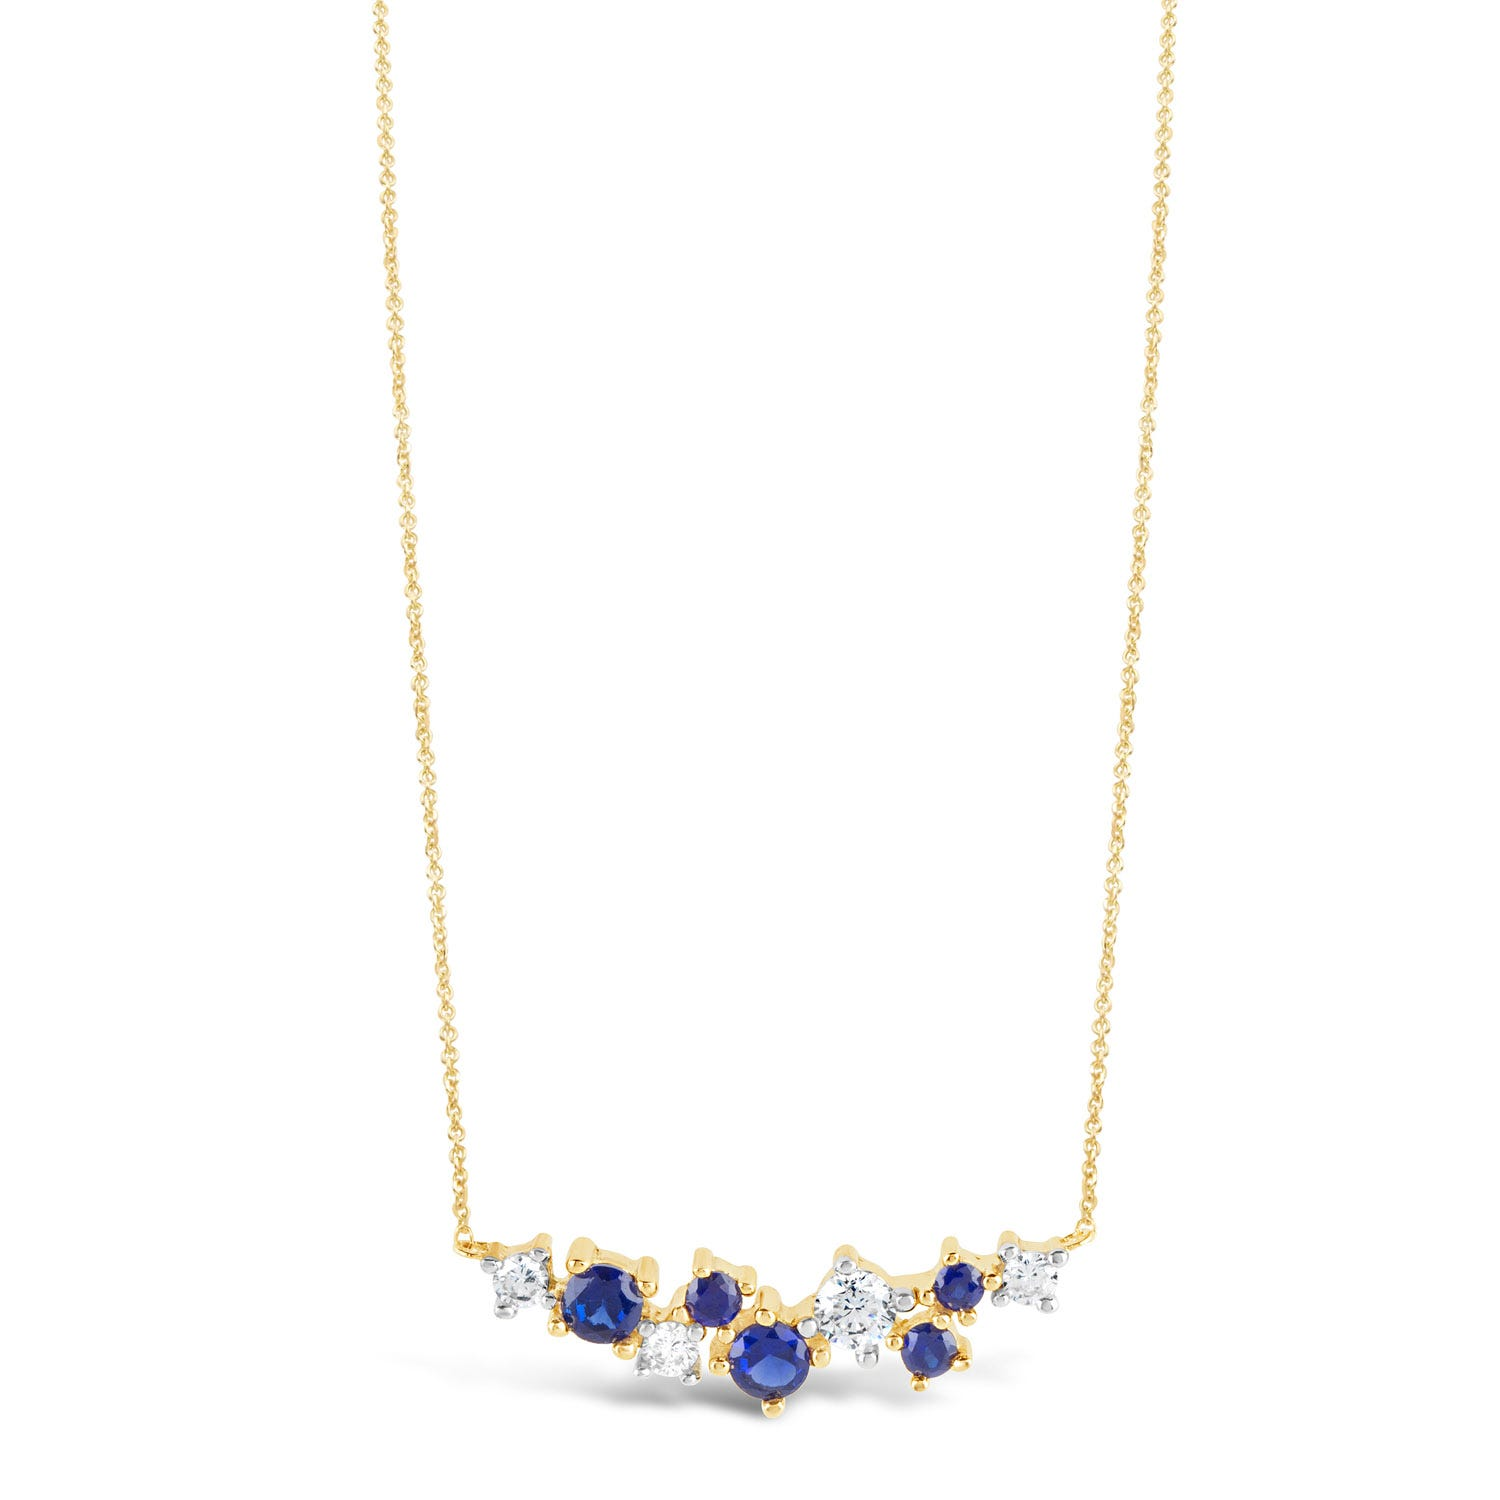 9ct Yellow Gold Sapphire and Cubic Zirconia Spray Necklet